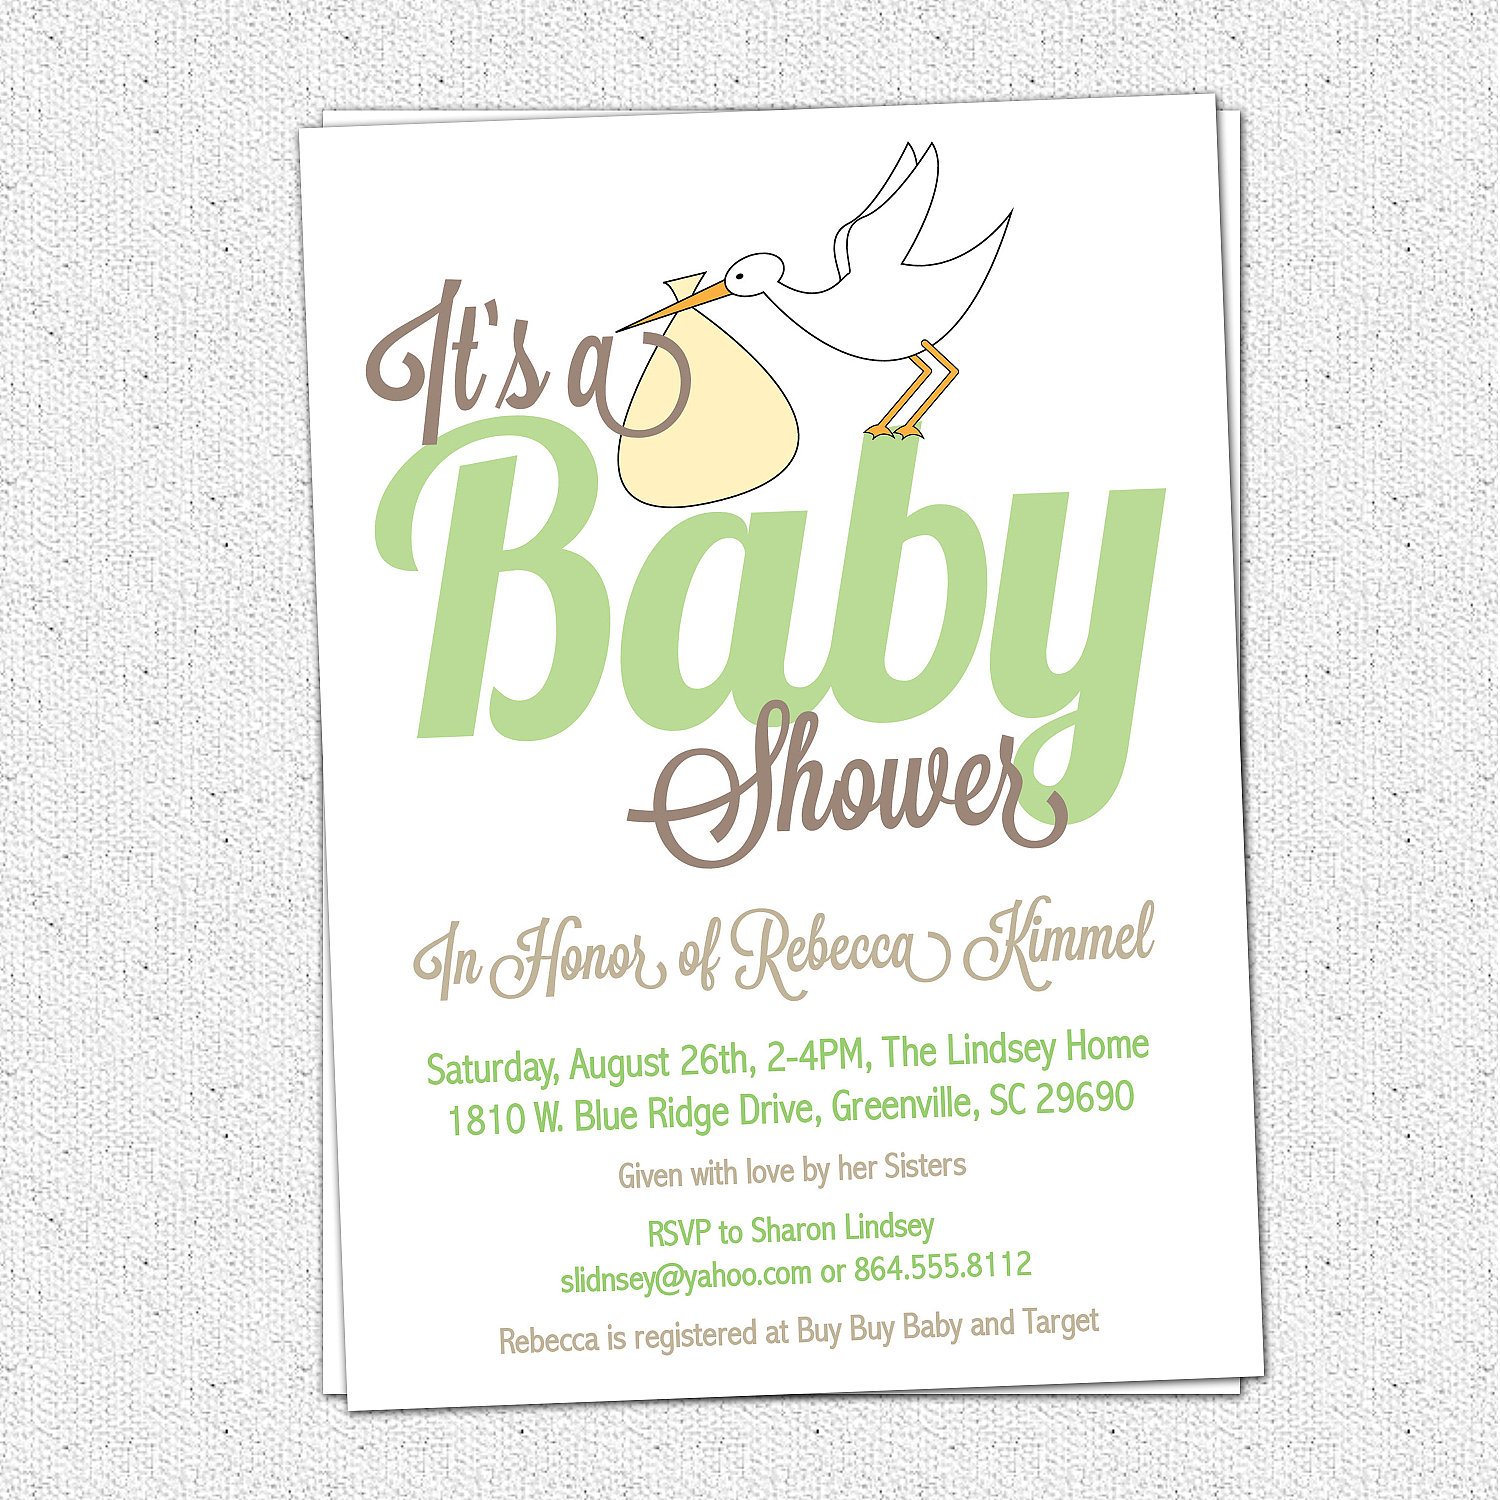 Stork baby shower invitationsgender neutral green yellow modern stork baby shower invitationsgender neutral green yellow modern calligraphy handwriting filmwisefo Choice Image